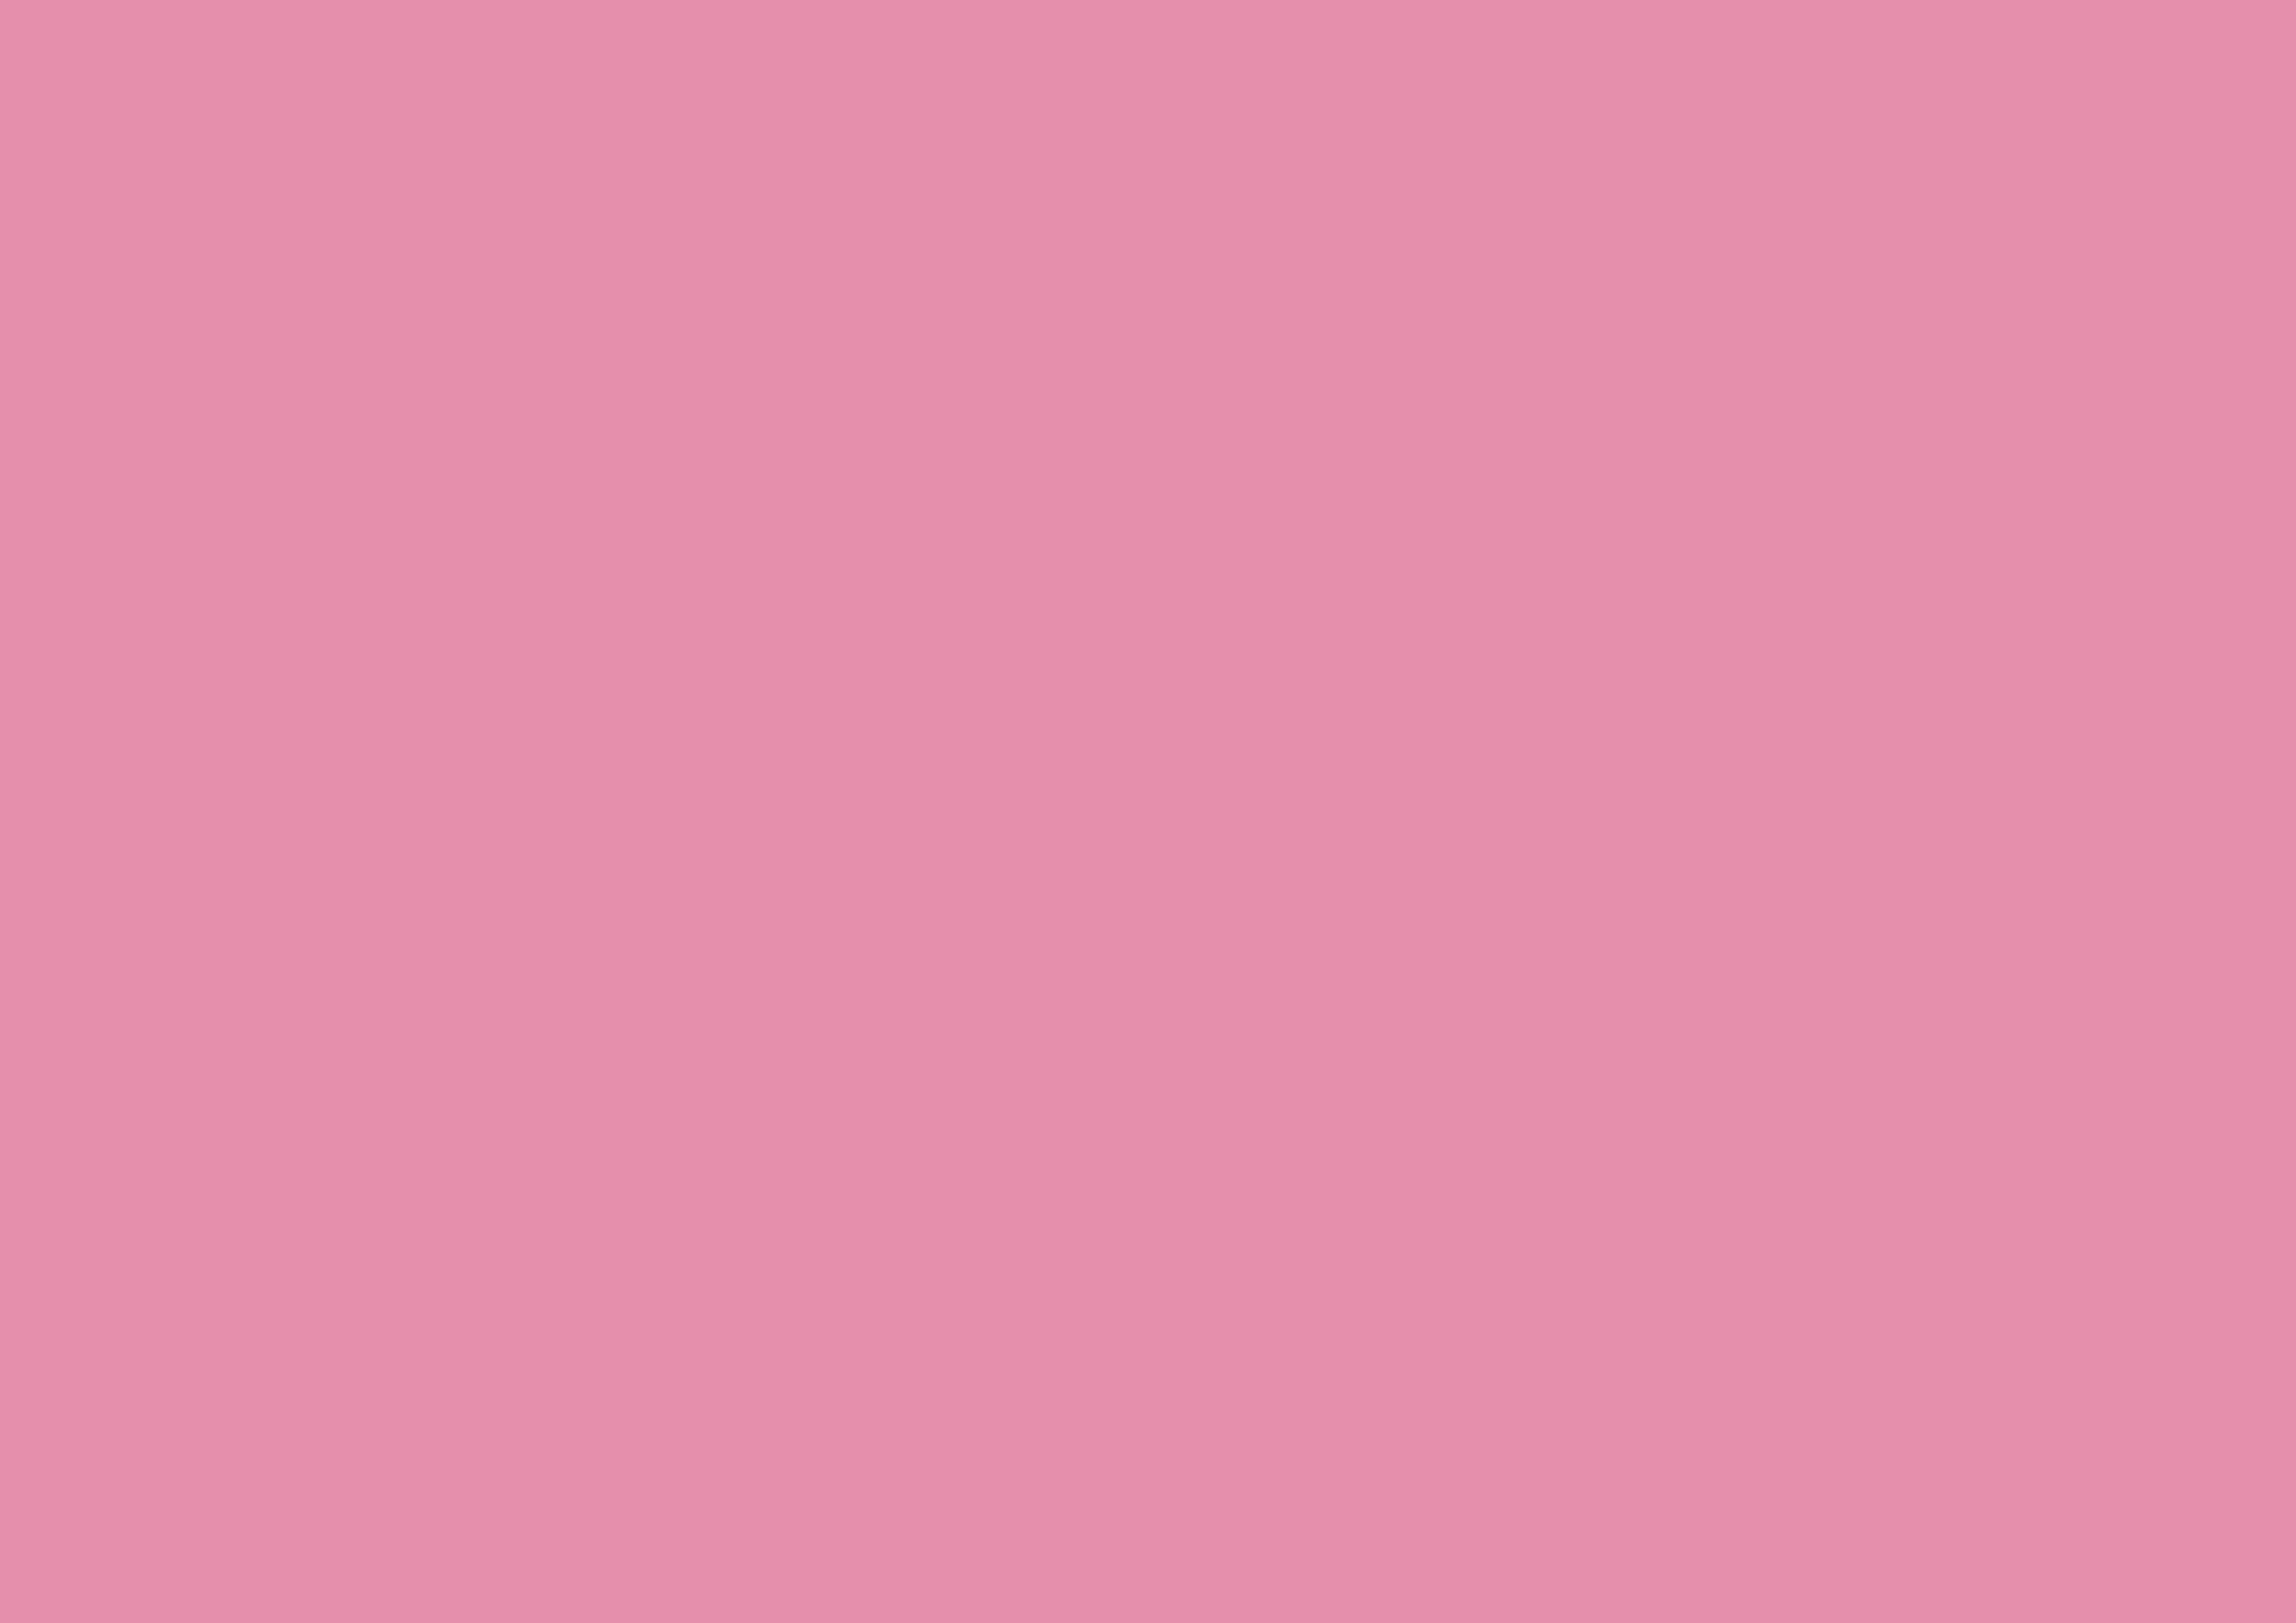 3508x2480 Charm Pink Solid Color Background 3508x2480